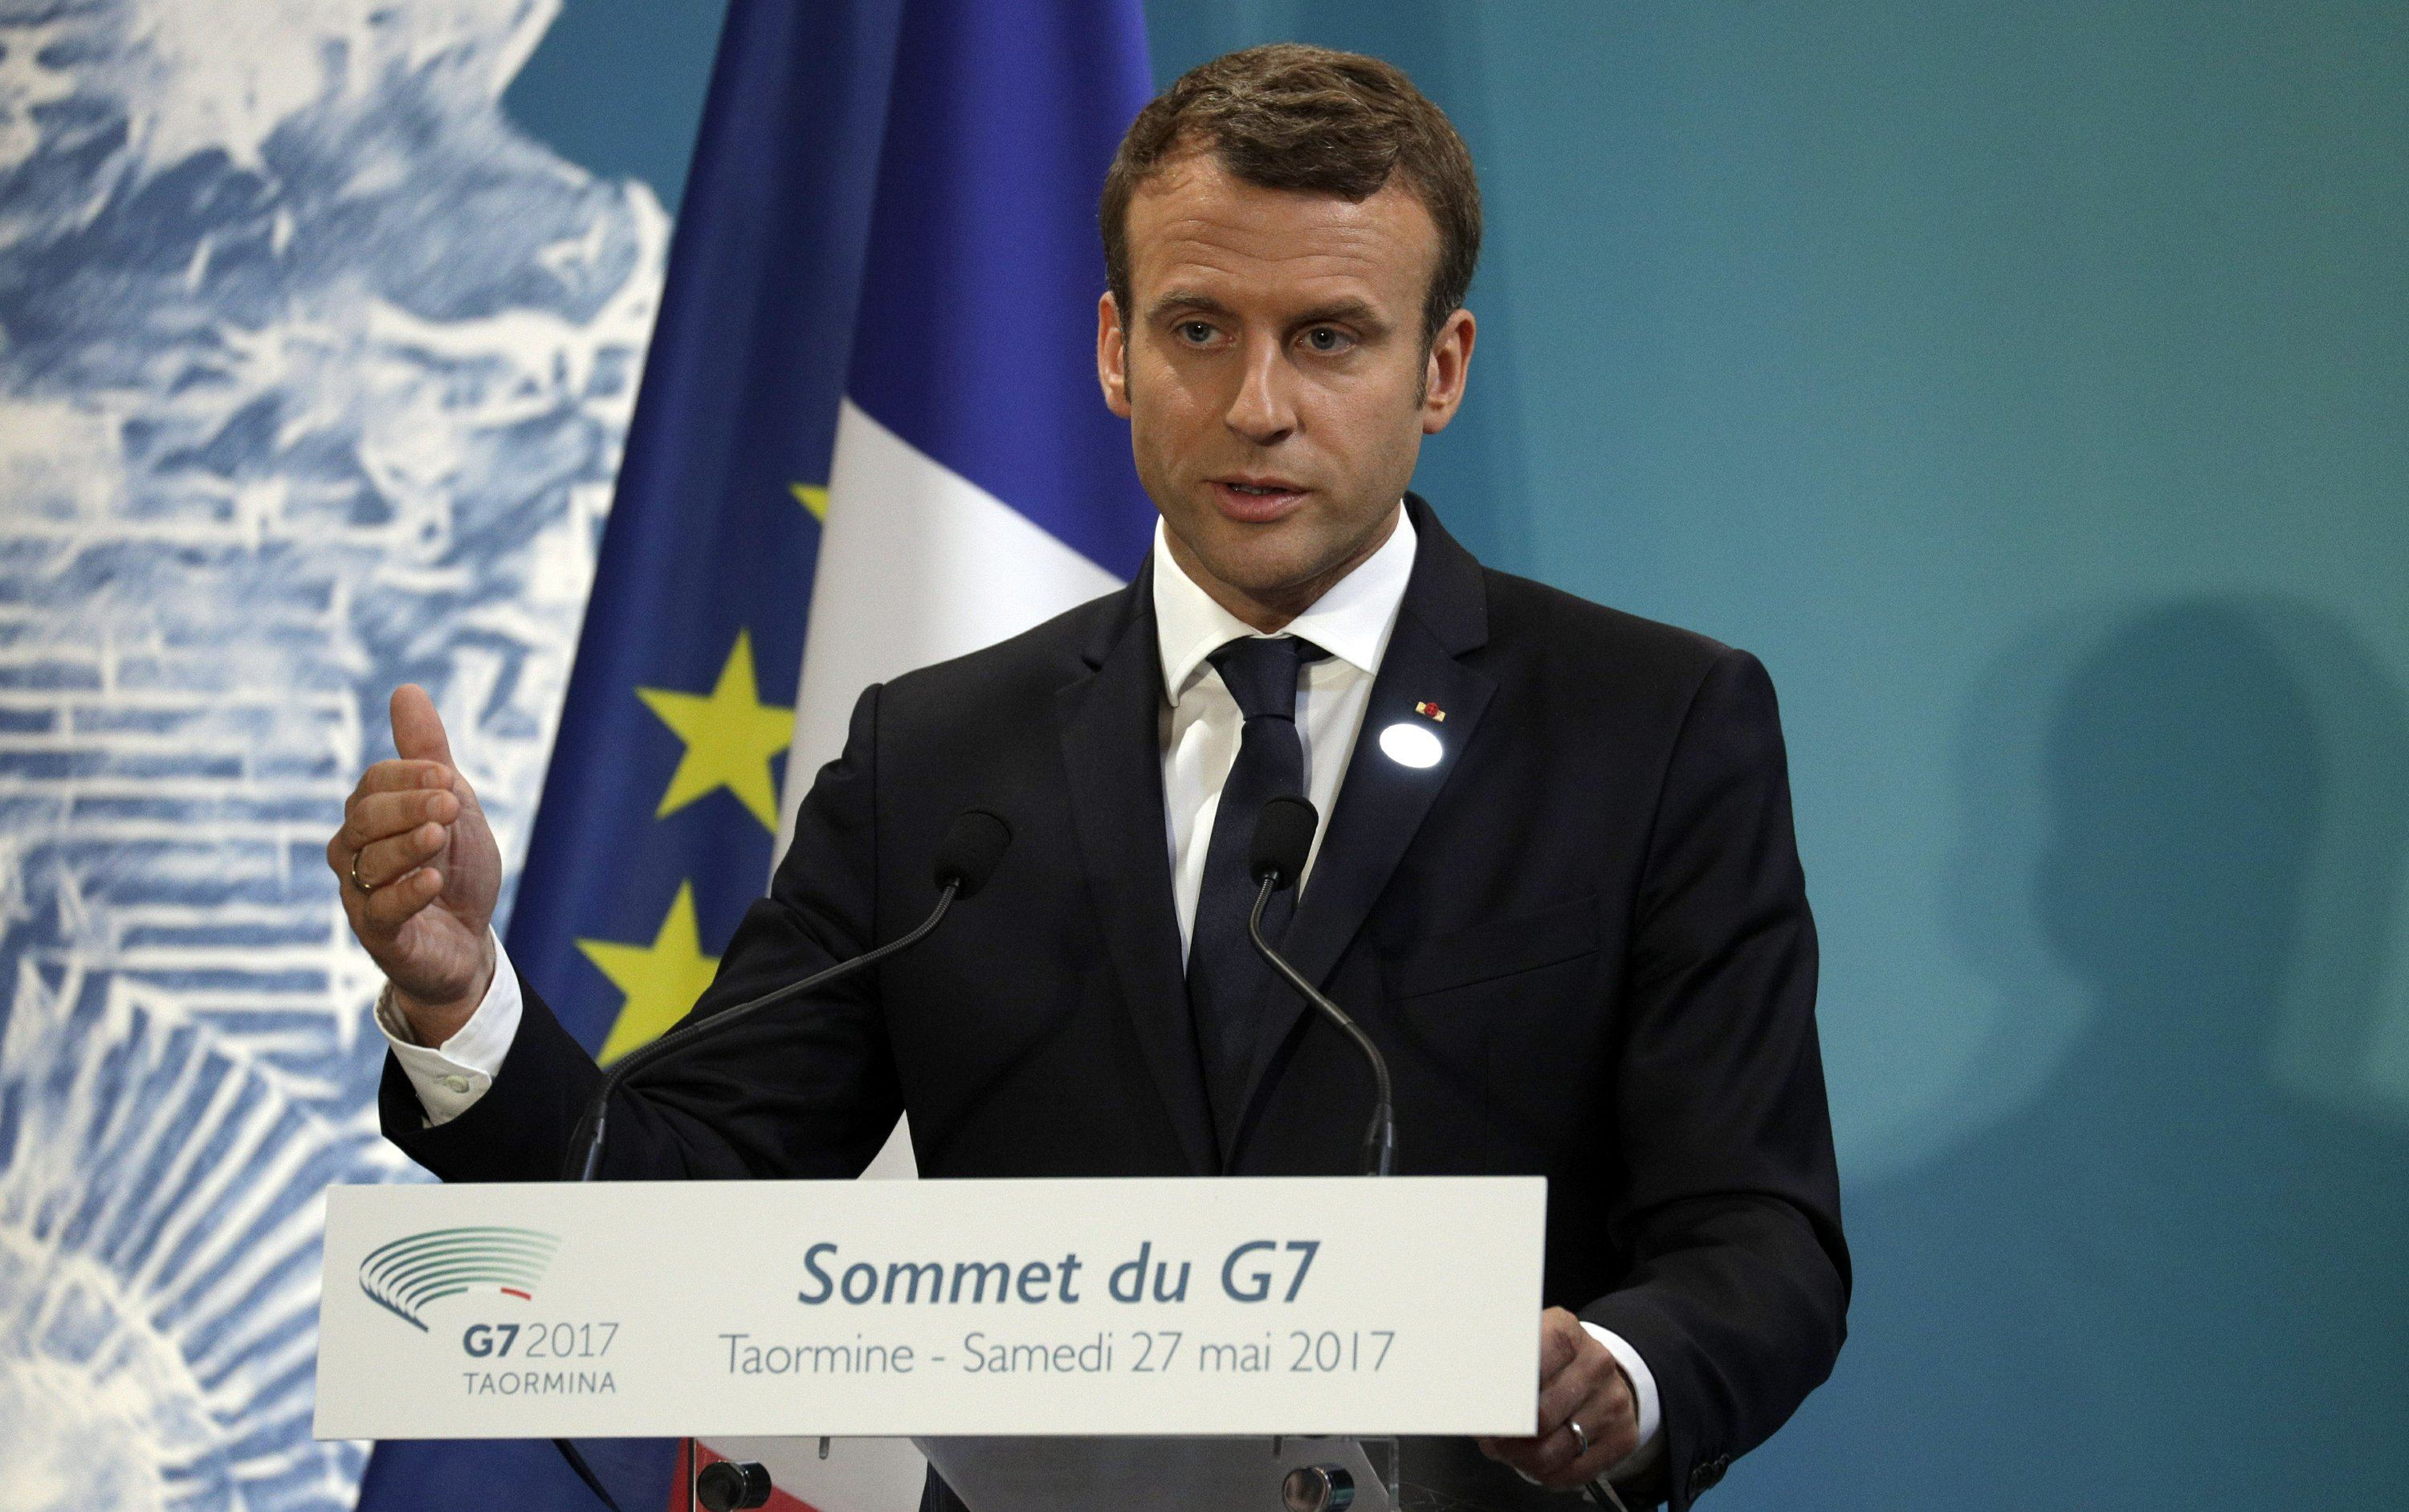 Newcomer Macron makes France's mark, with Trump and globally